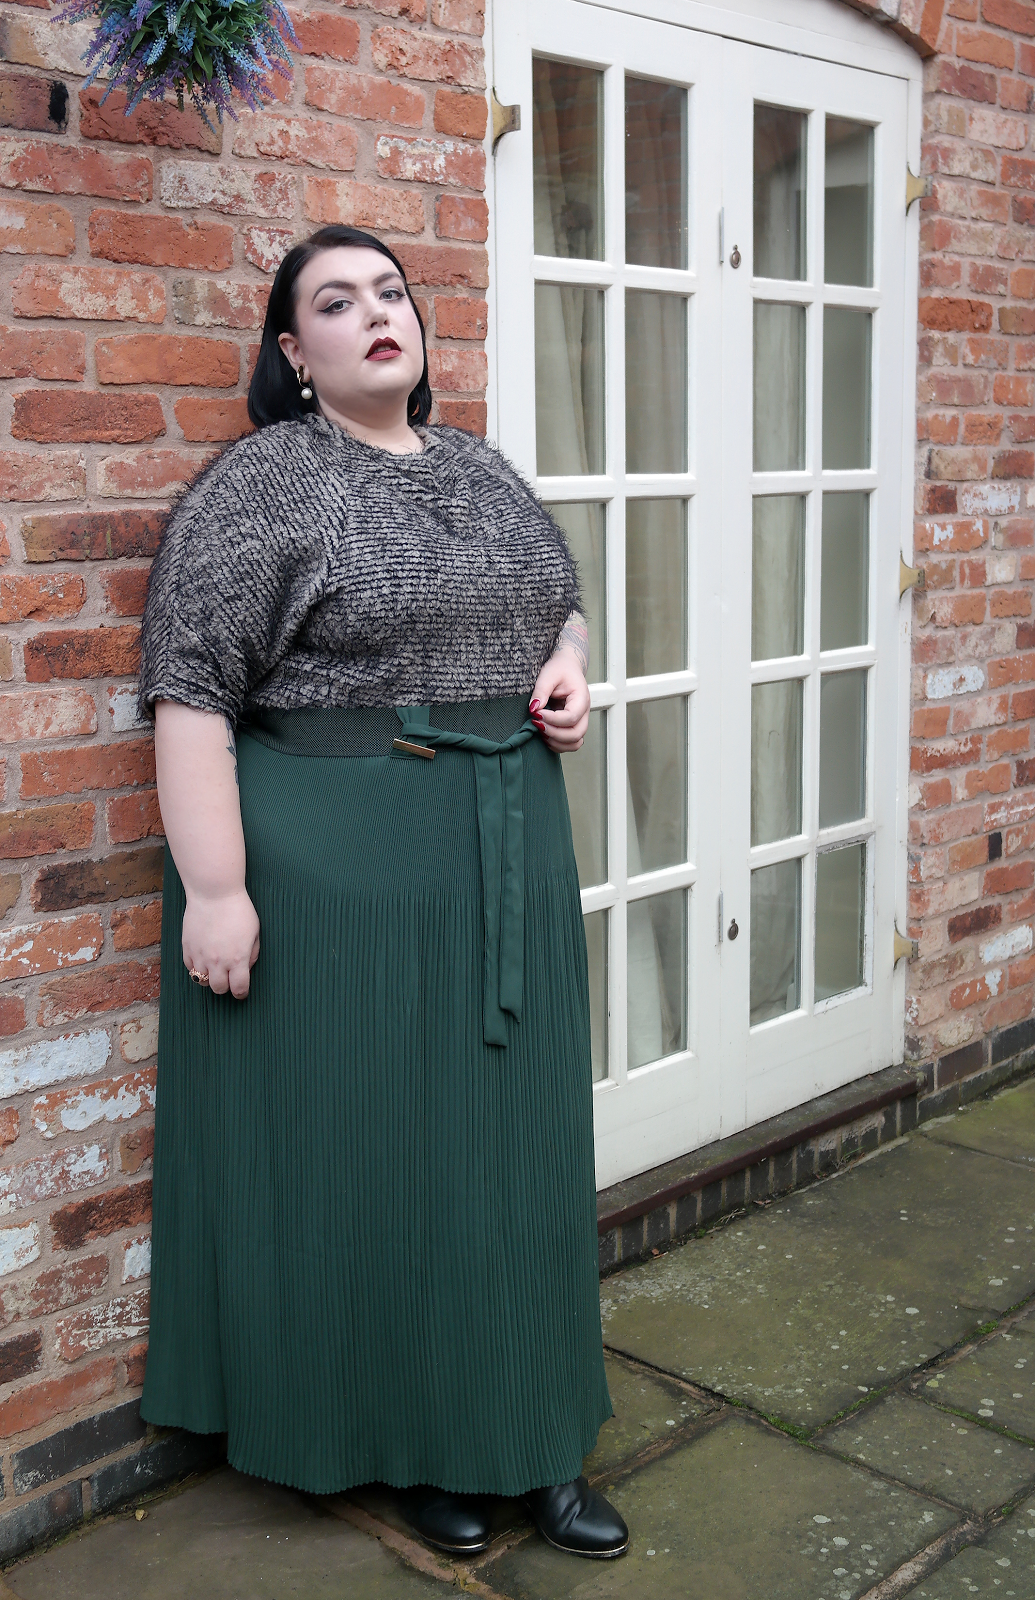 HUNTER English heritage Outfit posts and Ssbbw